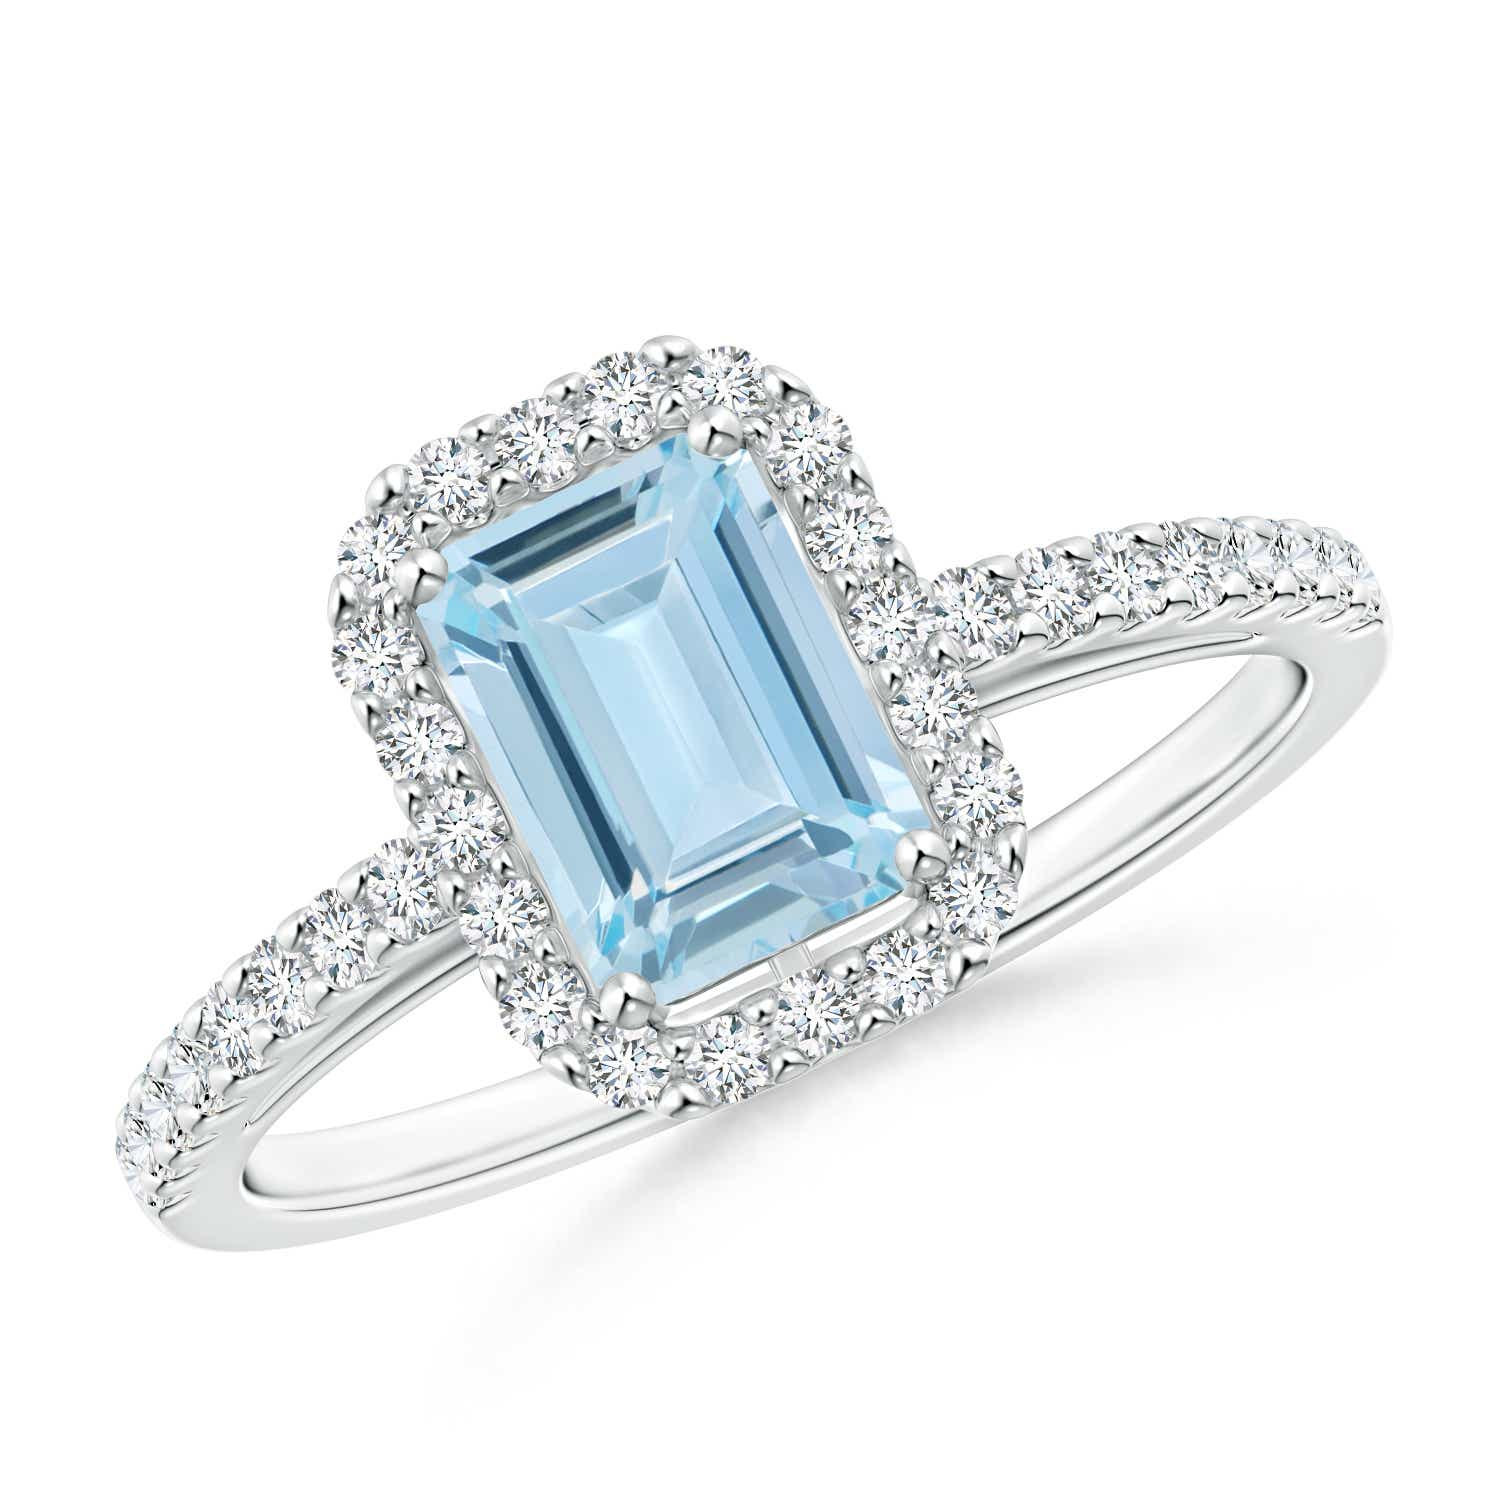 Angara Emerald-Cut Aquamarine Halo Engagement Ring White Gold Xyomy5